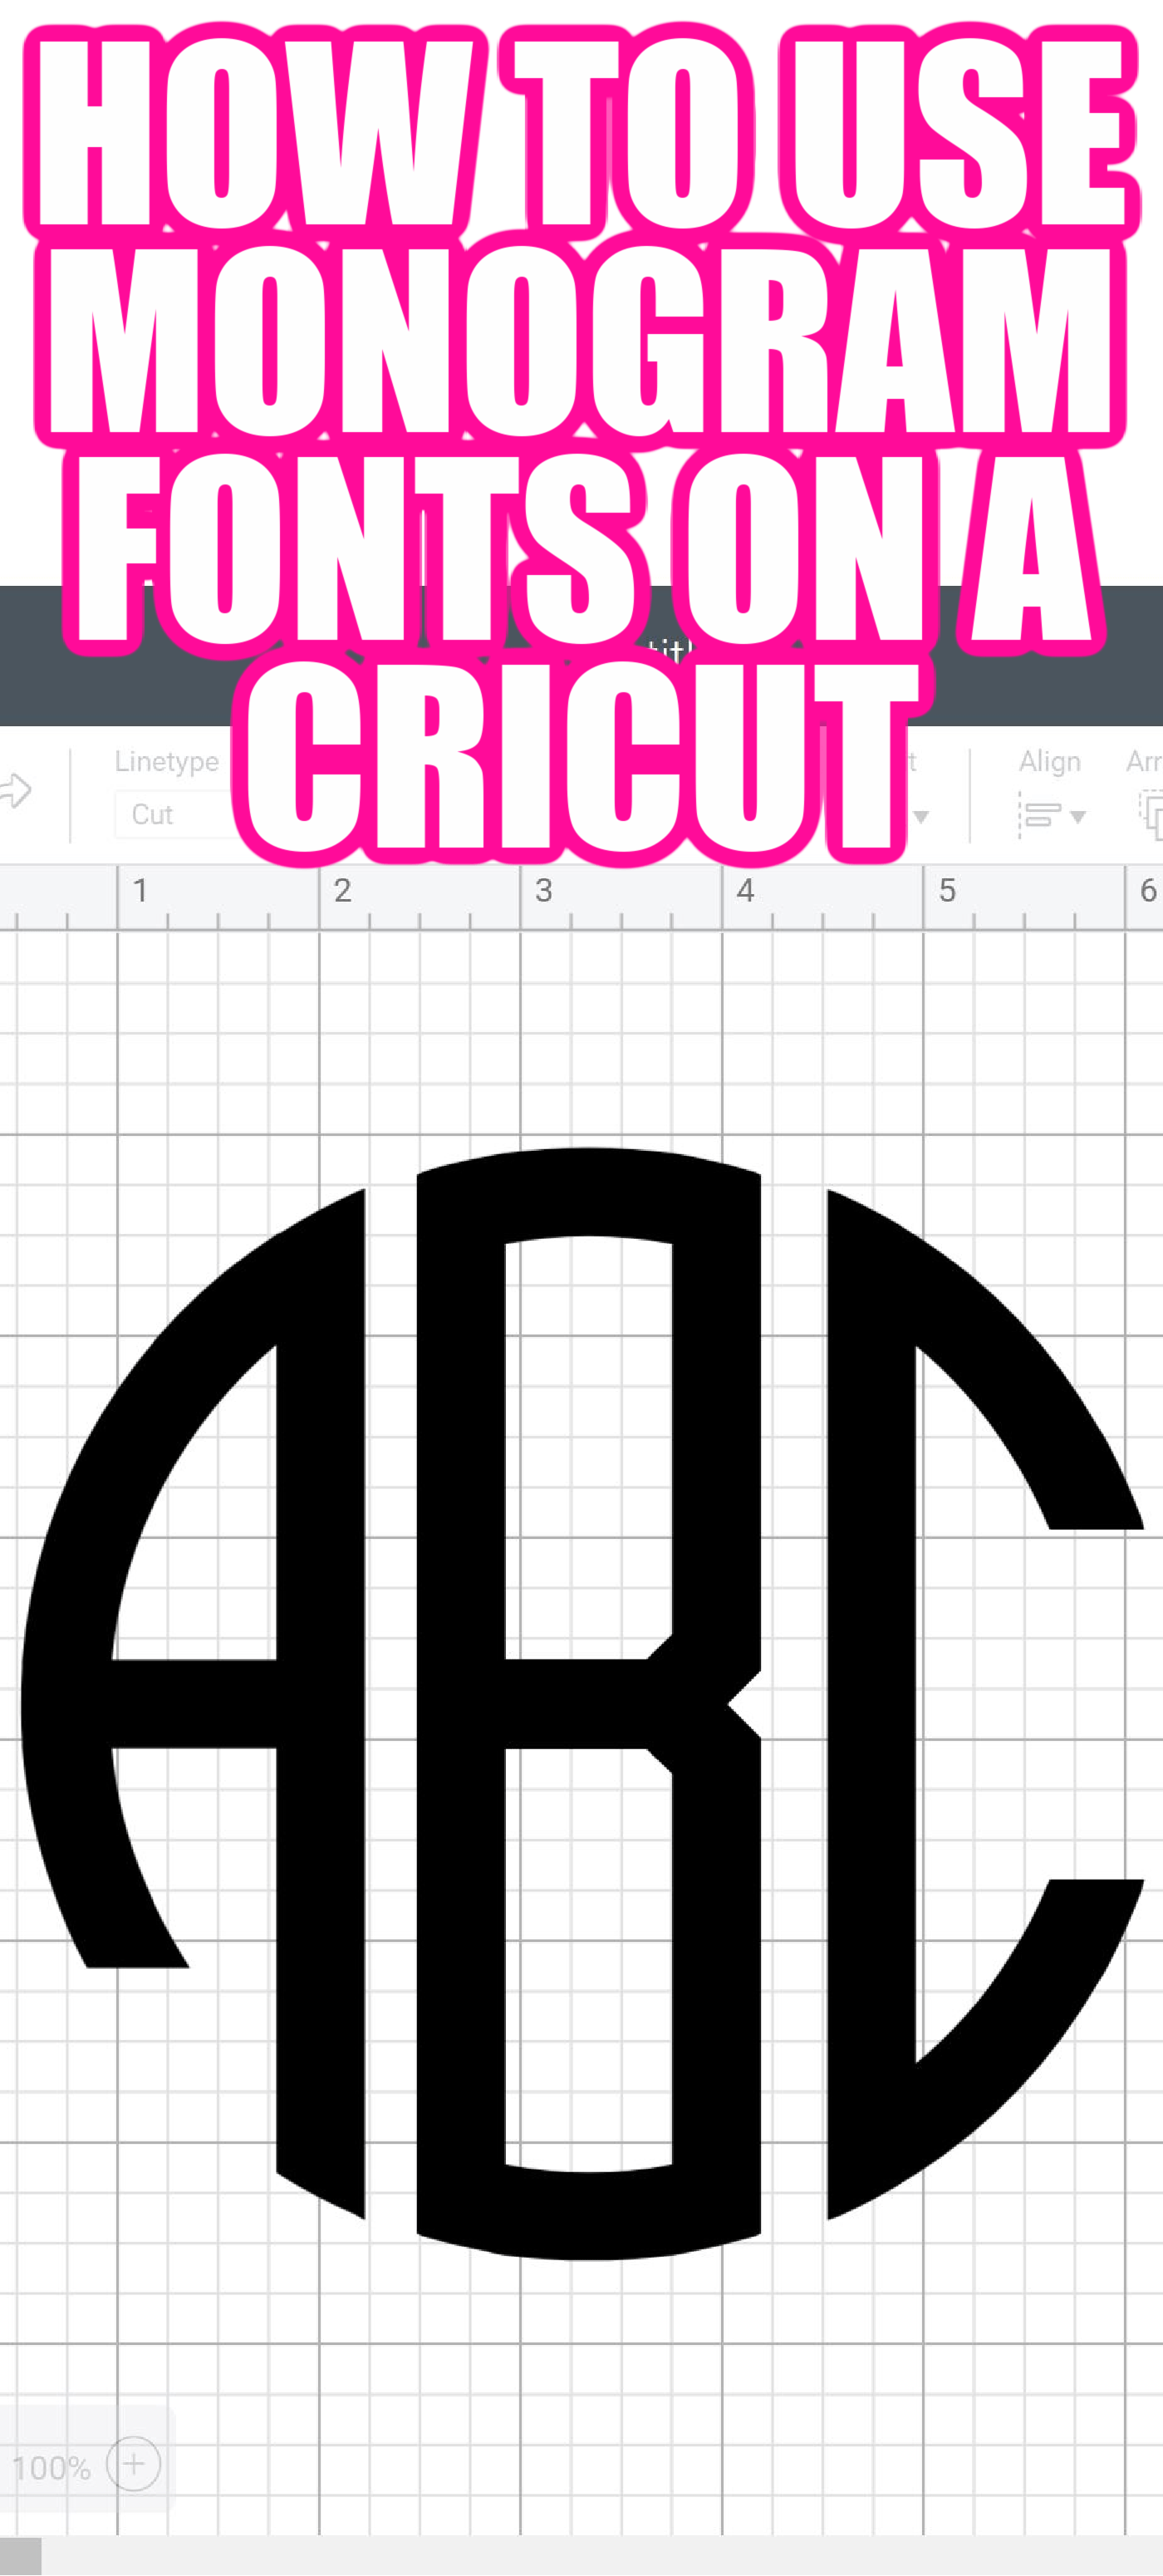 Best Font For Monogram : monogram, Monogram, Fonts, Using, Cricut, Country, Cottage